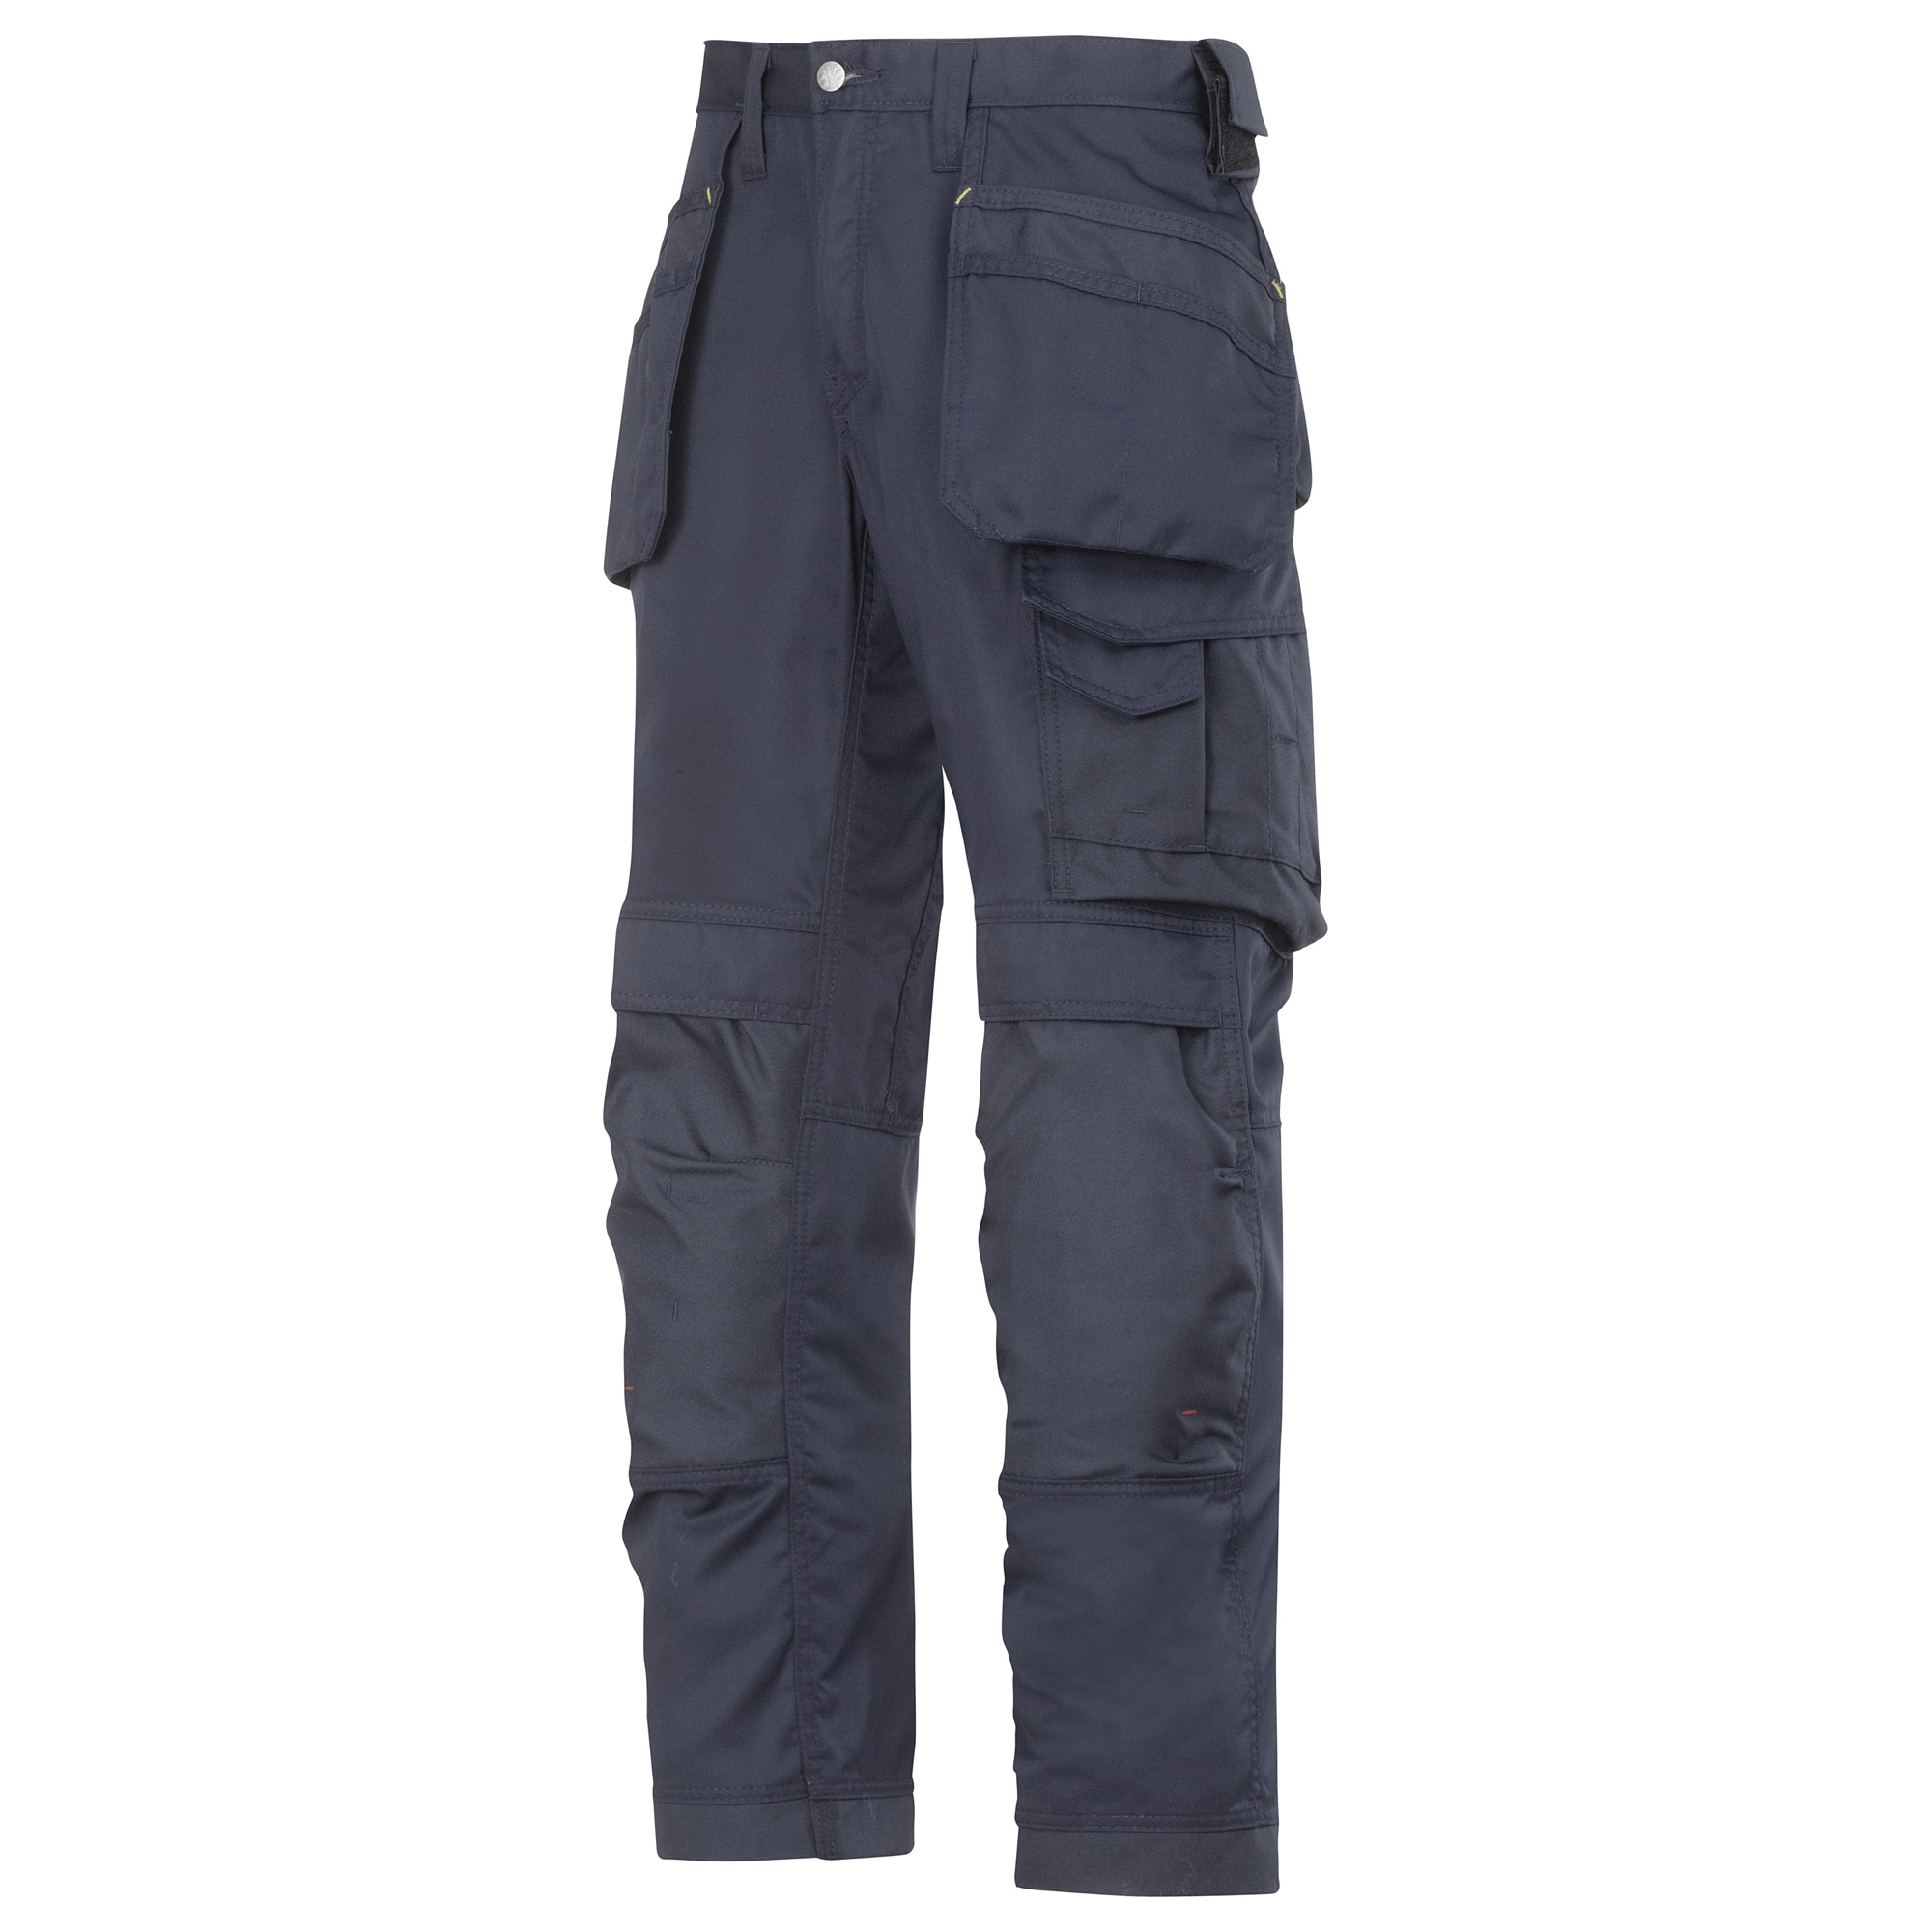 Snickers Mens Cooltwill Workwear Trousers / Pants (33R) (Navy)